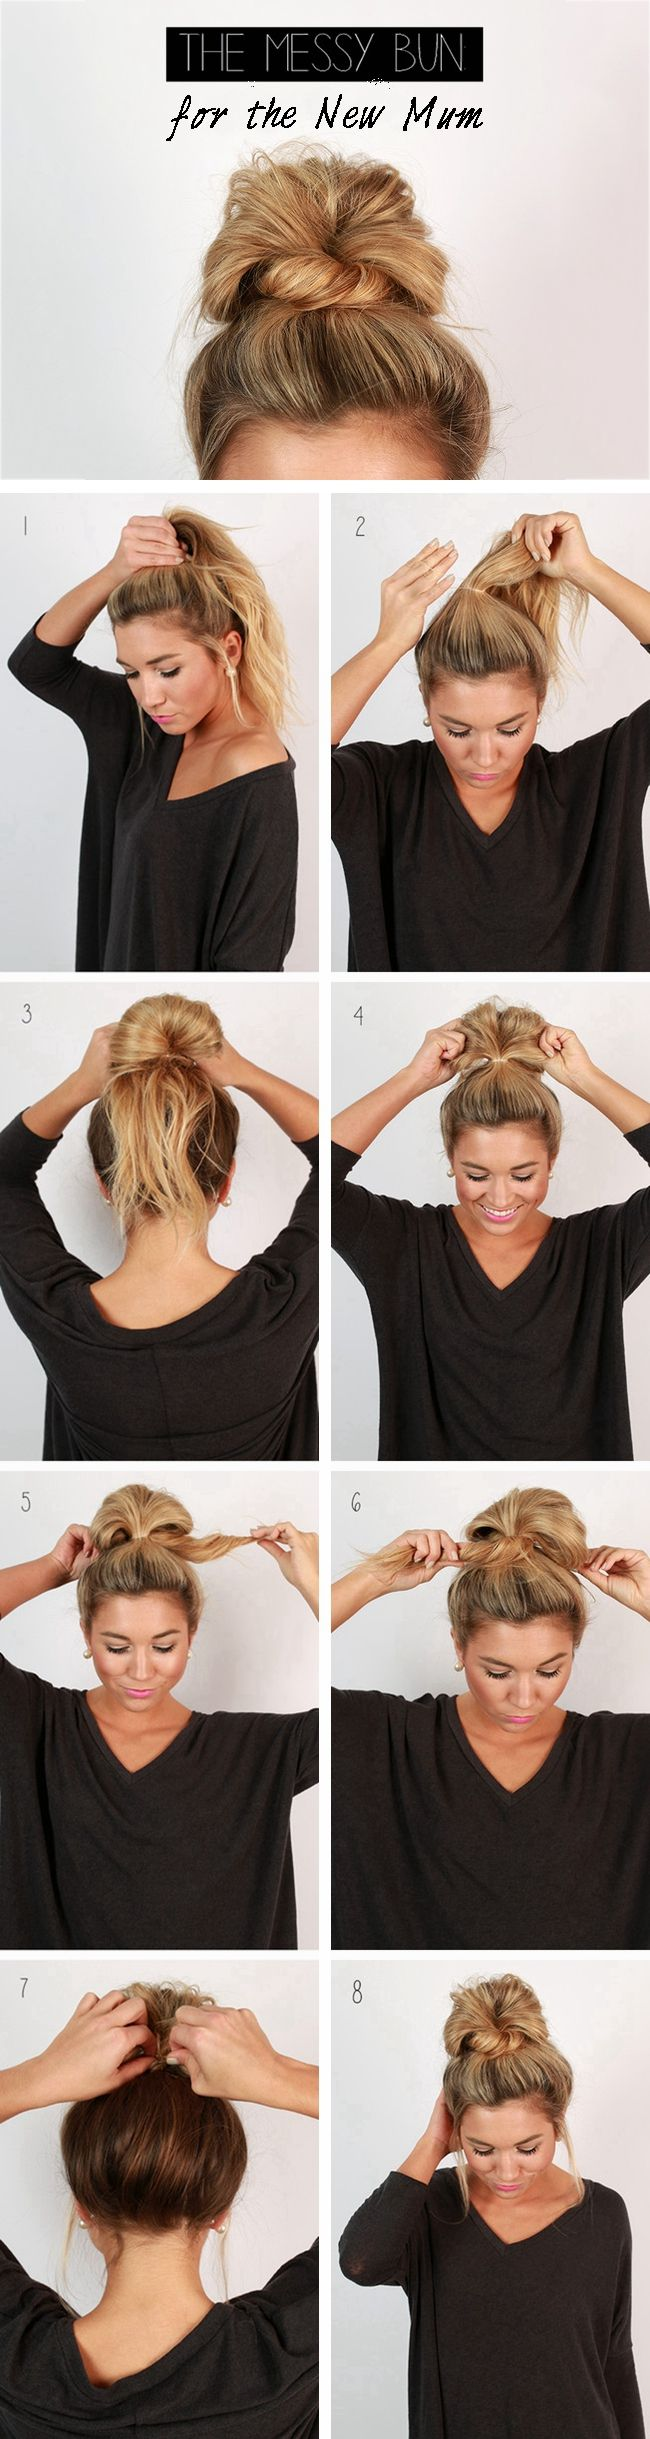 Magnificent 1000 Ideas About Bun Hairstyles On Pinterest Haircuts Short Hairstyles For Black Women Fulllsitofus